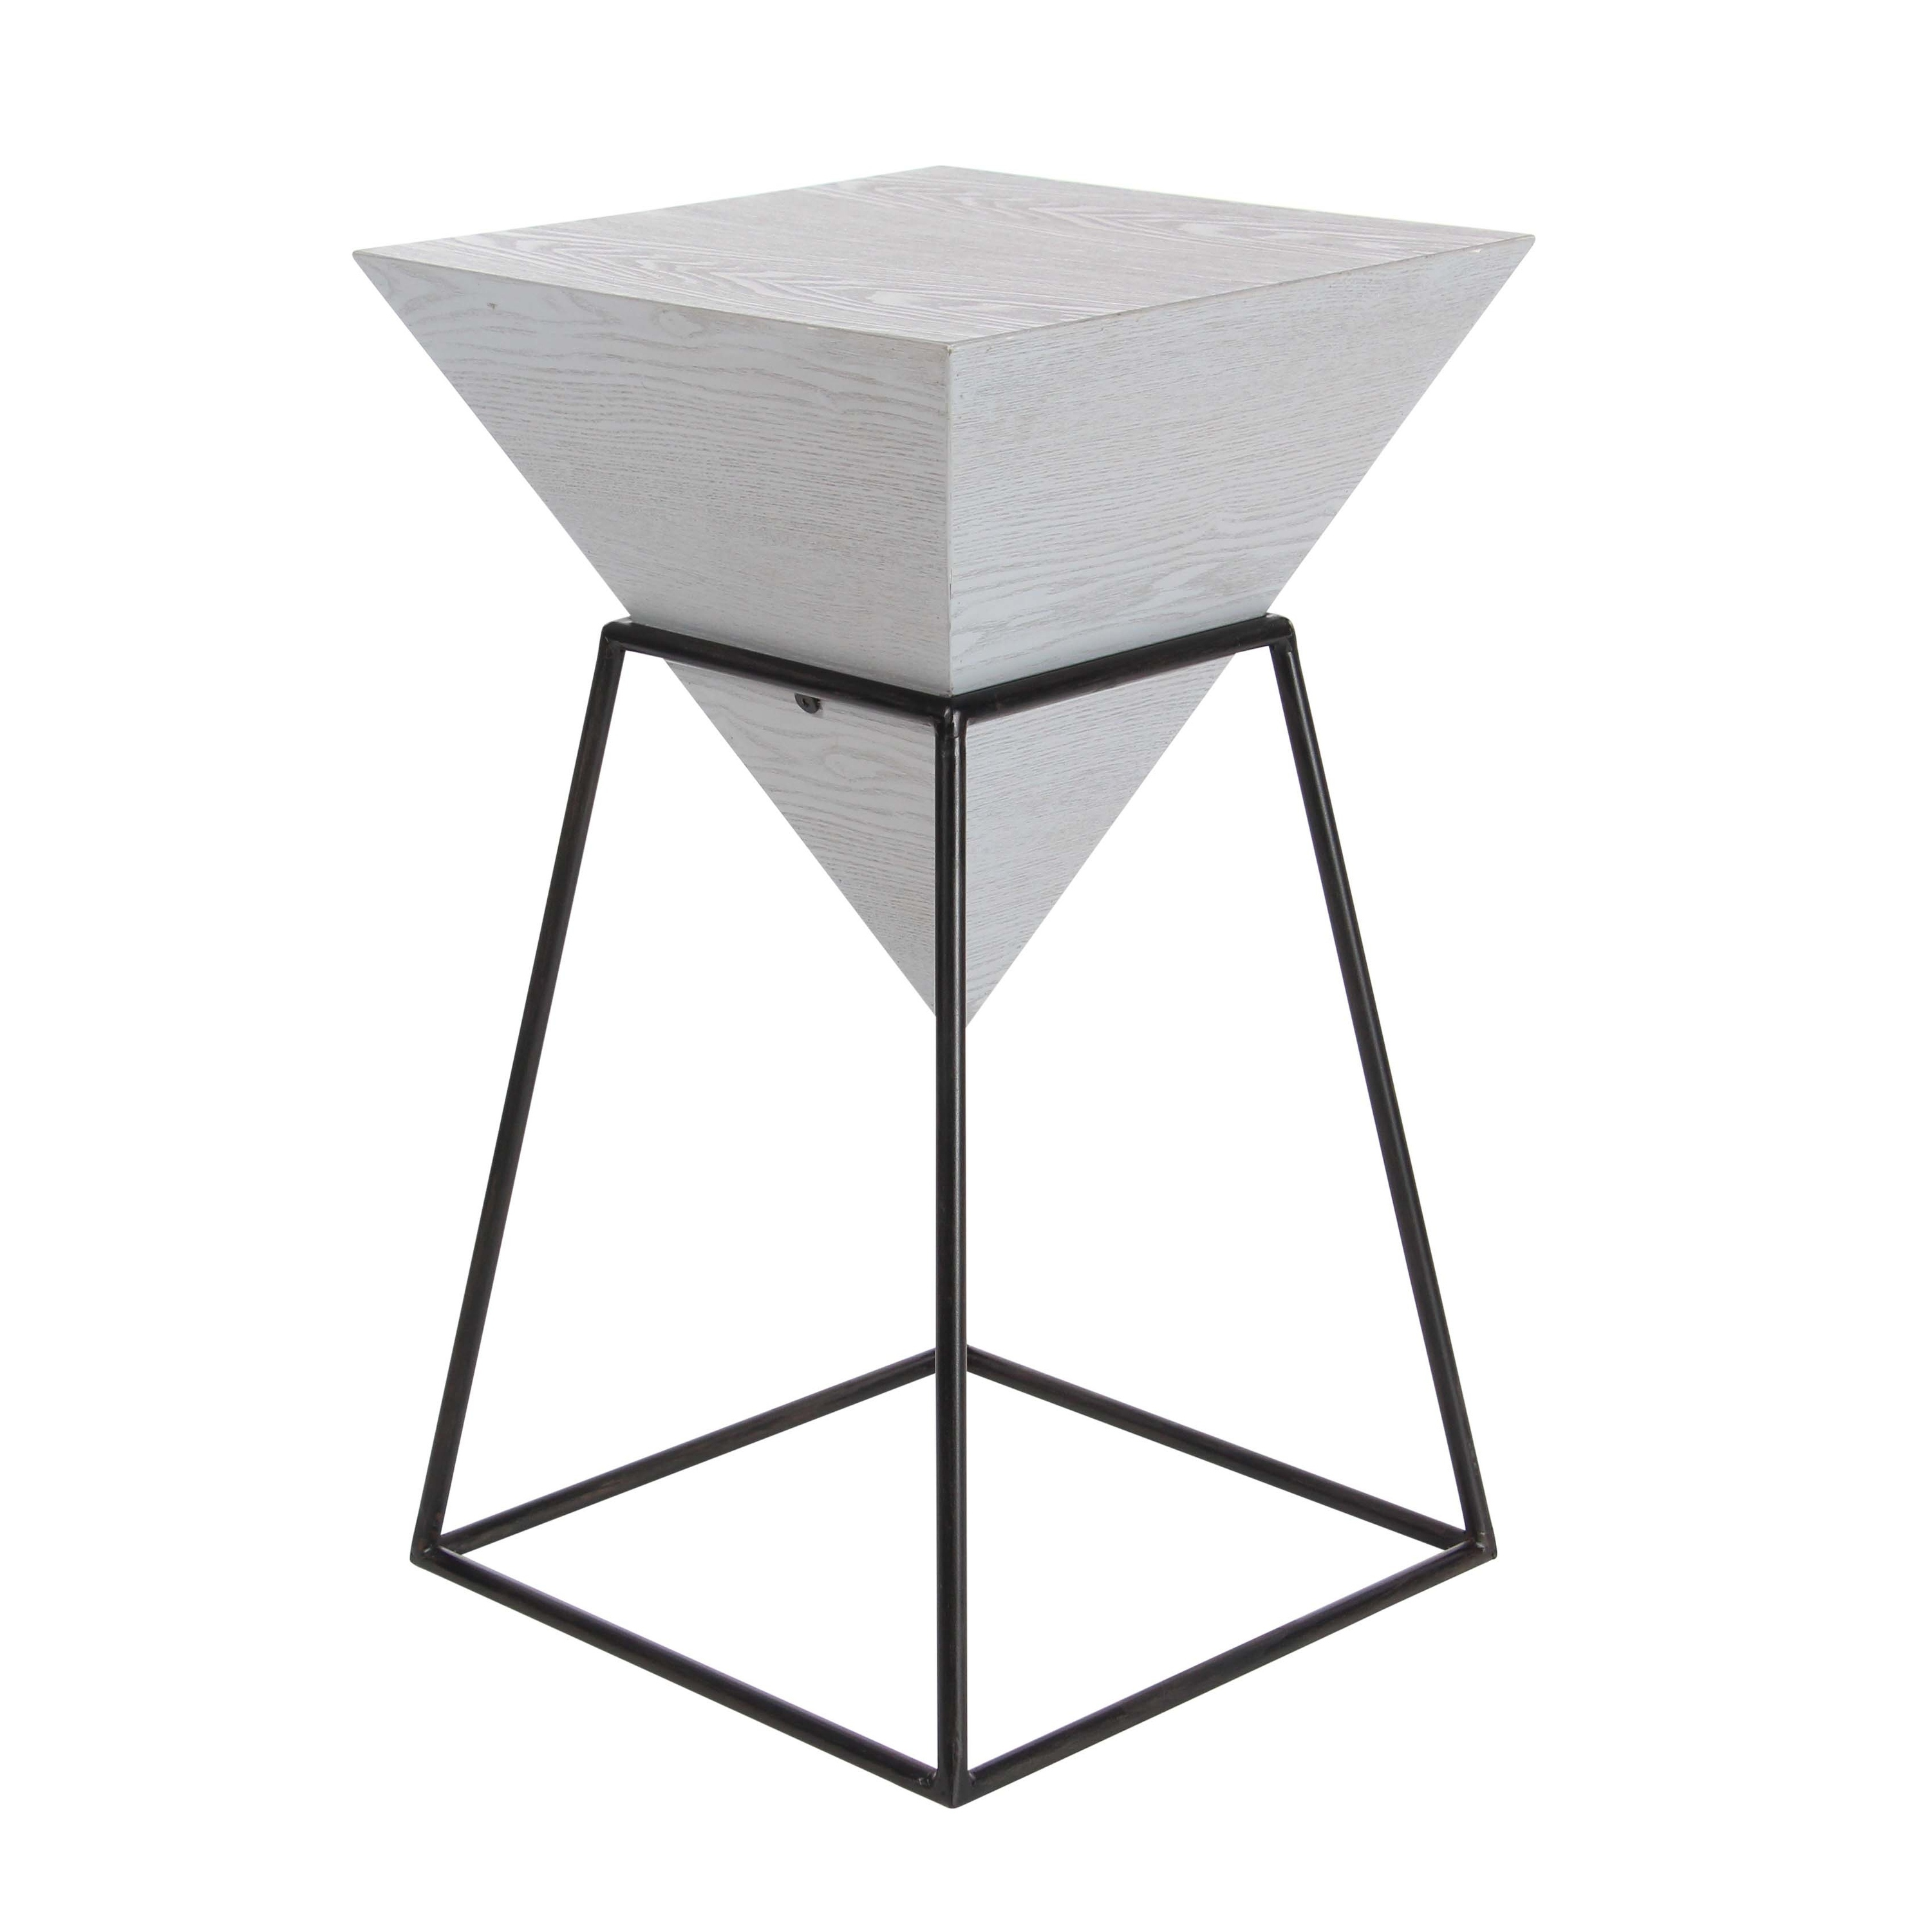 modern inch gray wood and iron accent table studio vanora free shipping today stand bar grey green paint large round glass coffee small dressers clearance chairs antique oval side